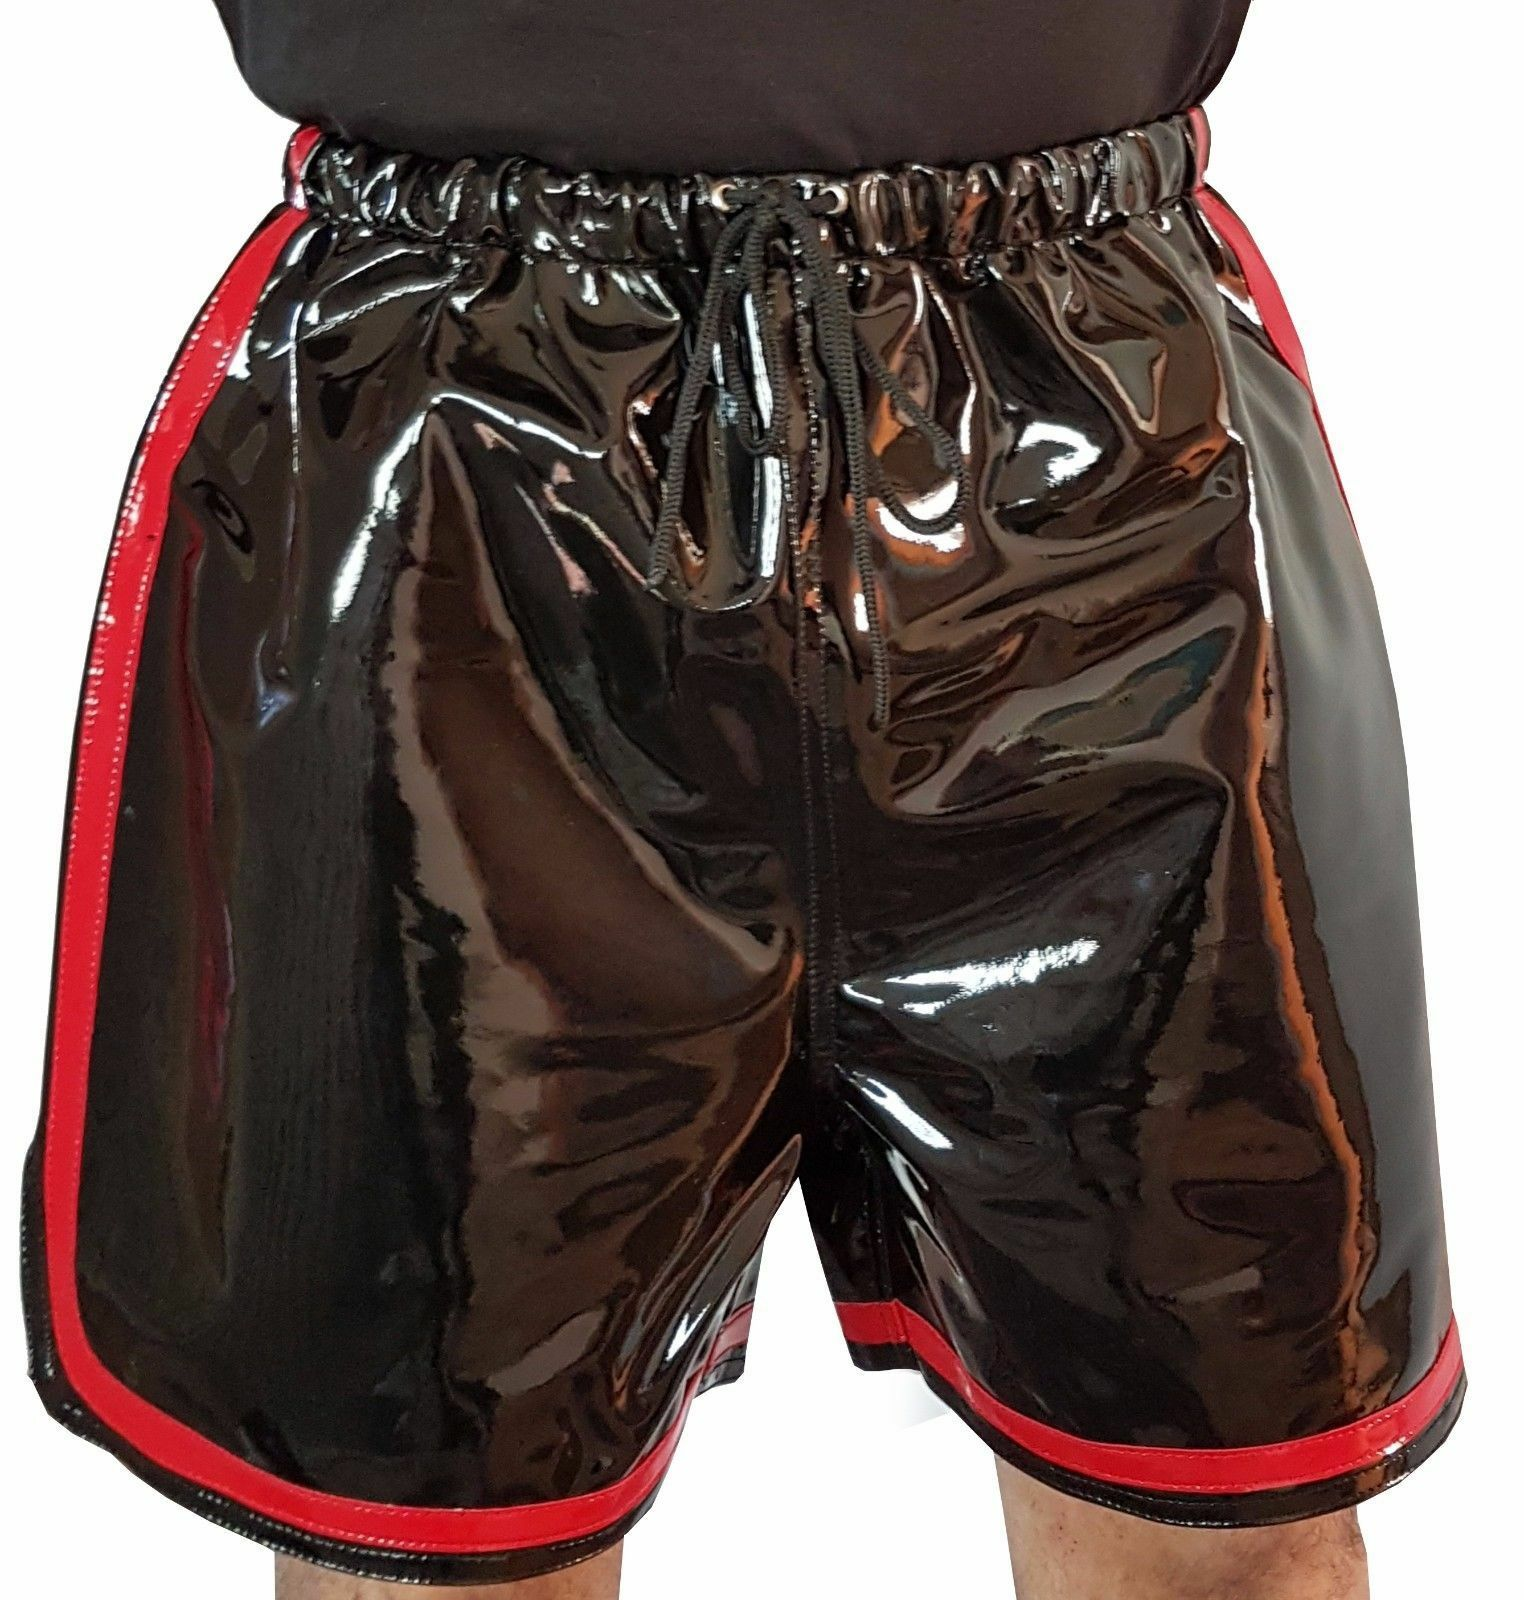 High Quality PVC Shorts with Elasticated Leisure Shorts Size M  L  XL  2XL